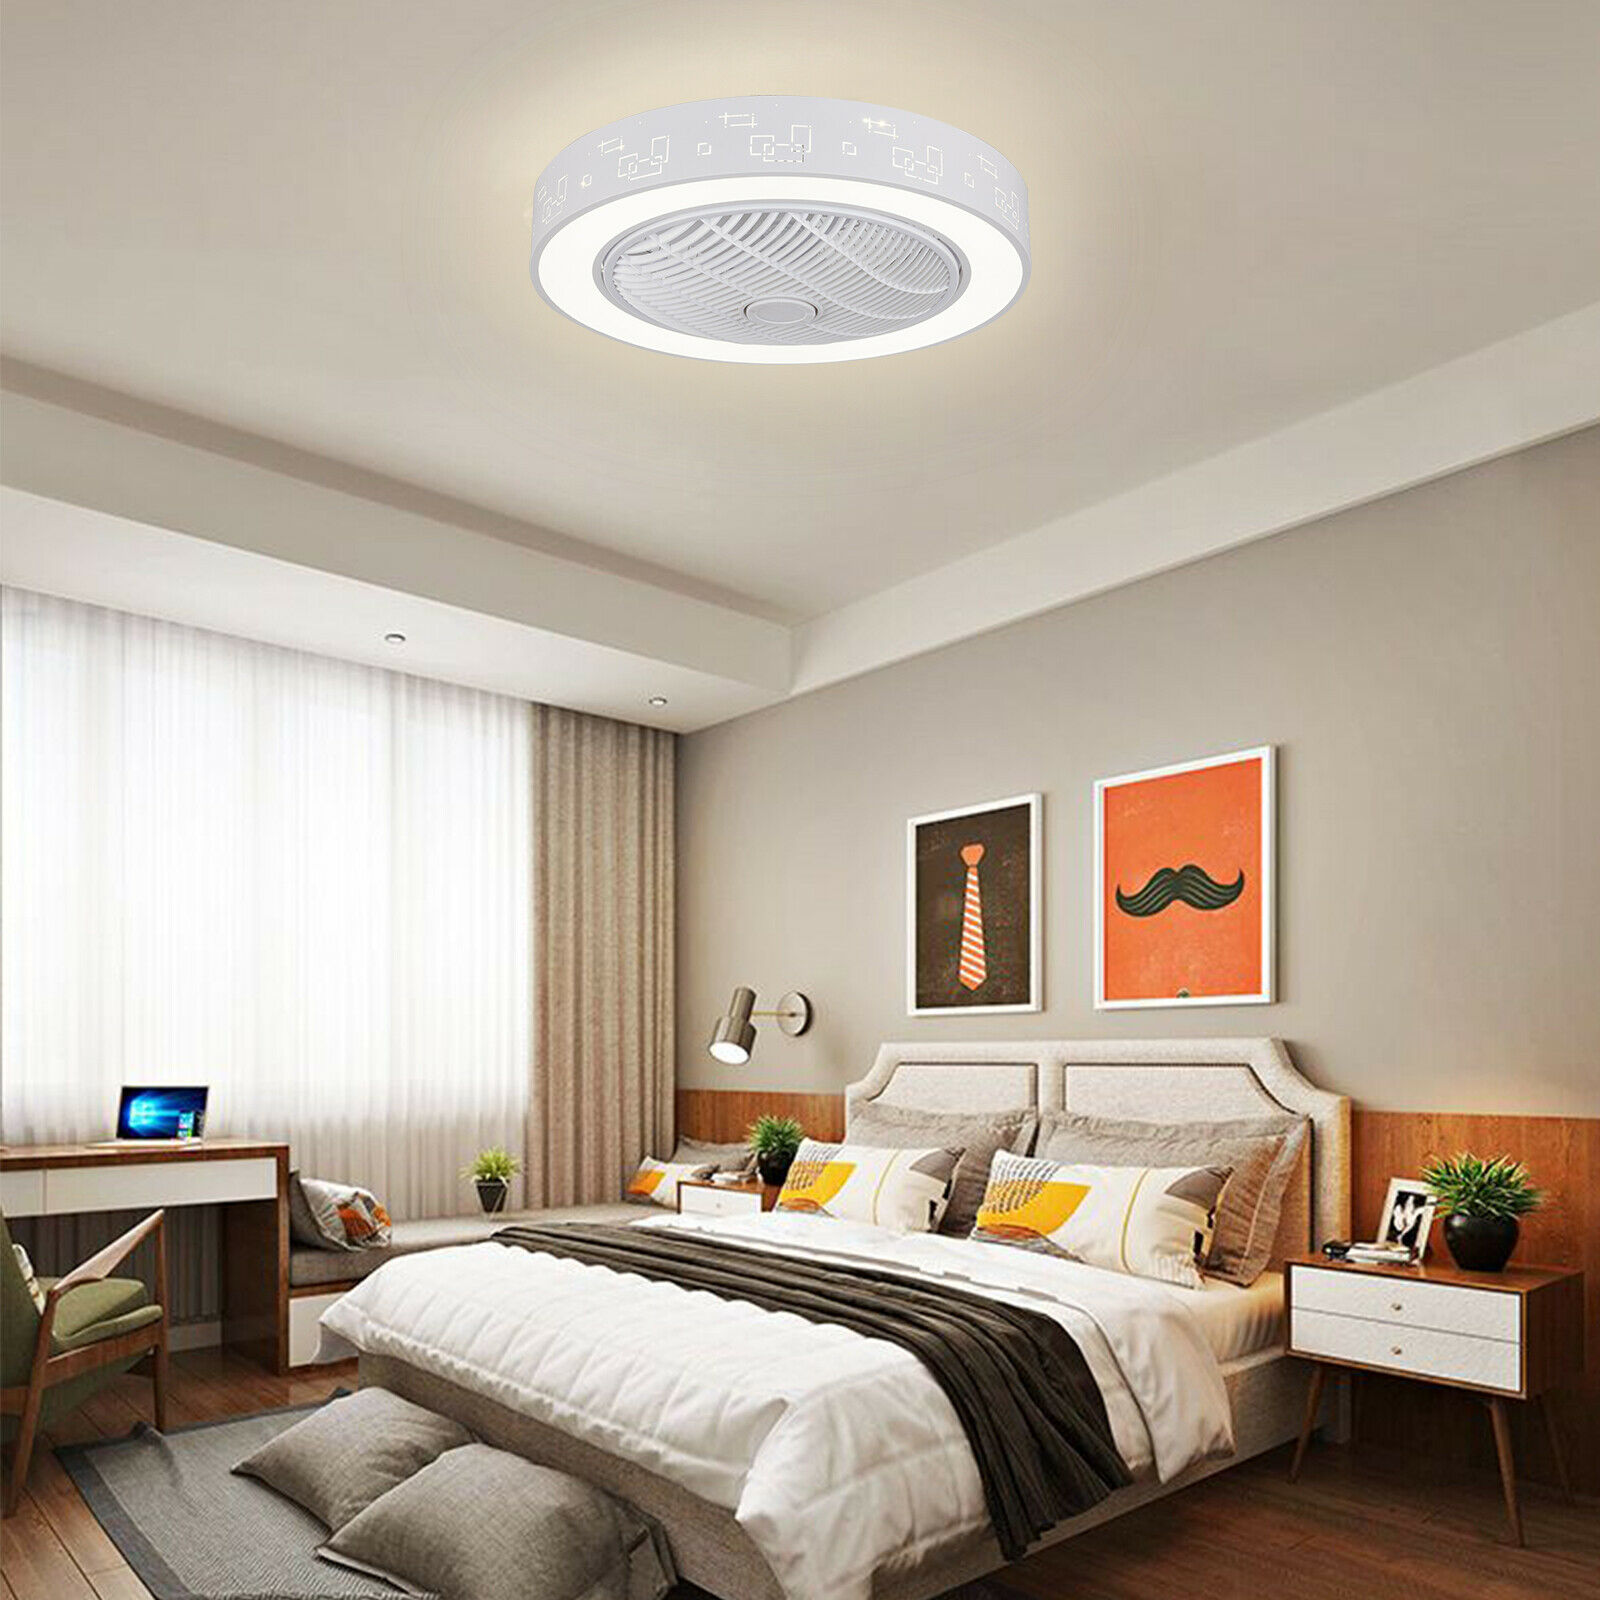 23 Constellation Flush Mount Ceiling Fan W/Dimmable LED Light Remote Control - $113.11